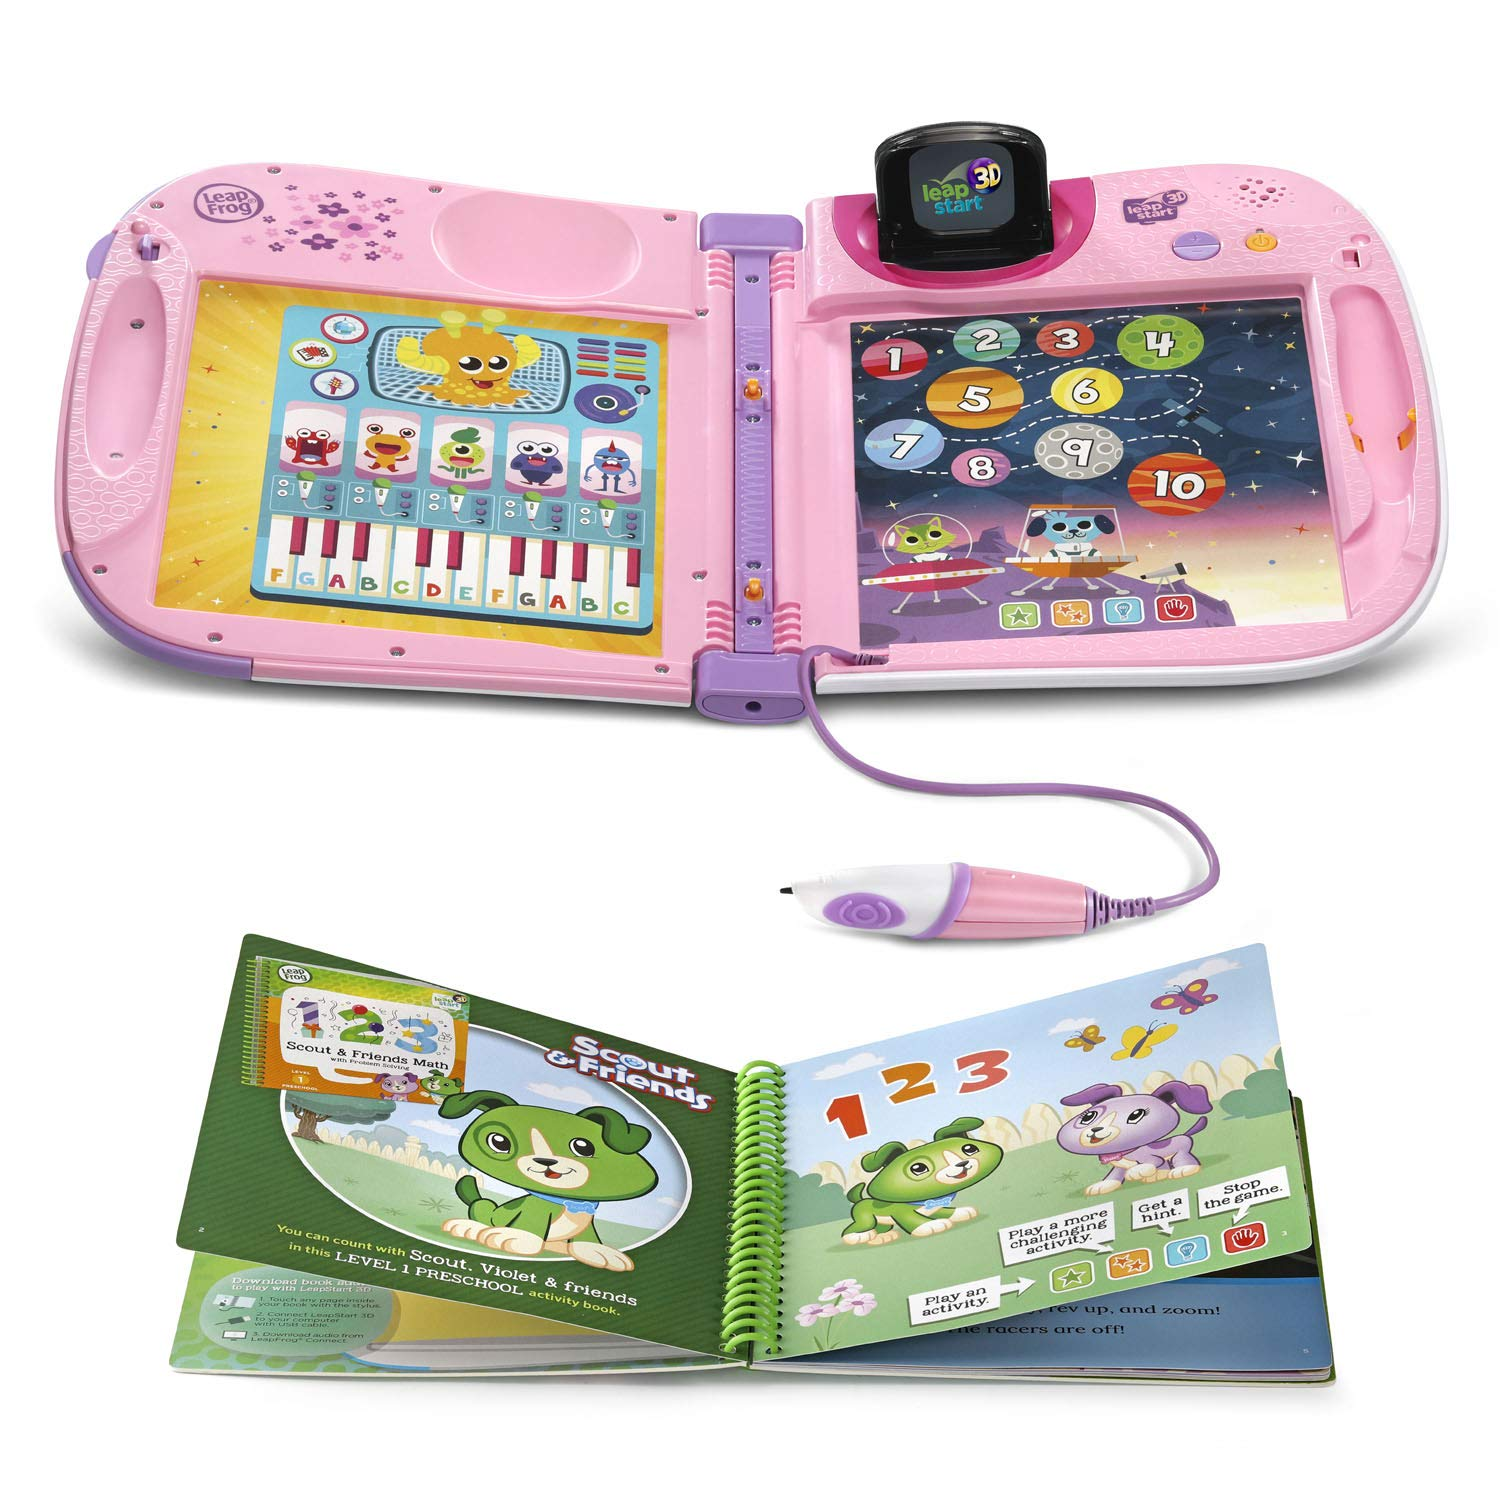 LeapFrog LeapStart 3D Interactive Learning System Amazon Exclusive, Violet by LeapFrog (Image #2)